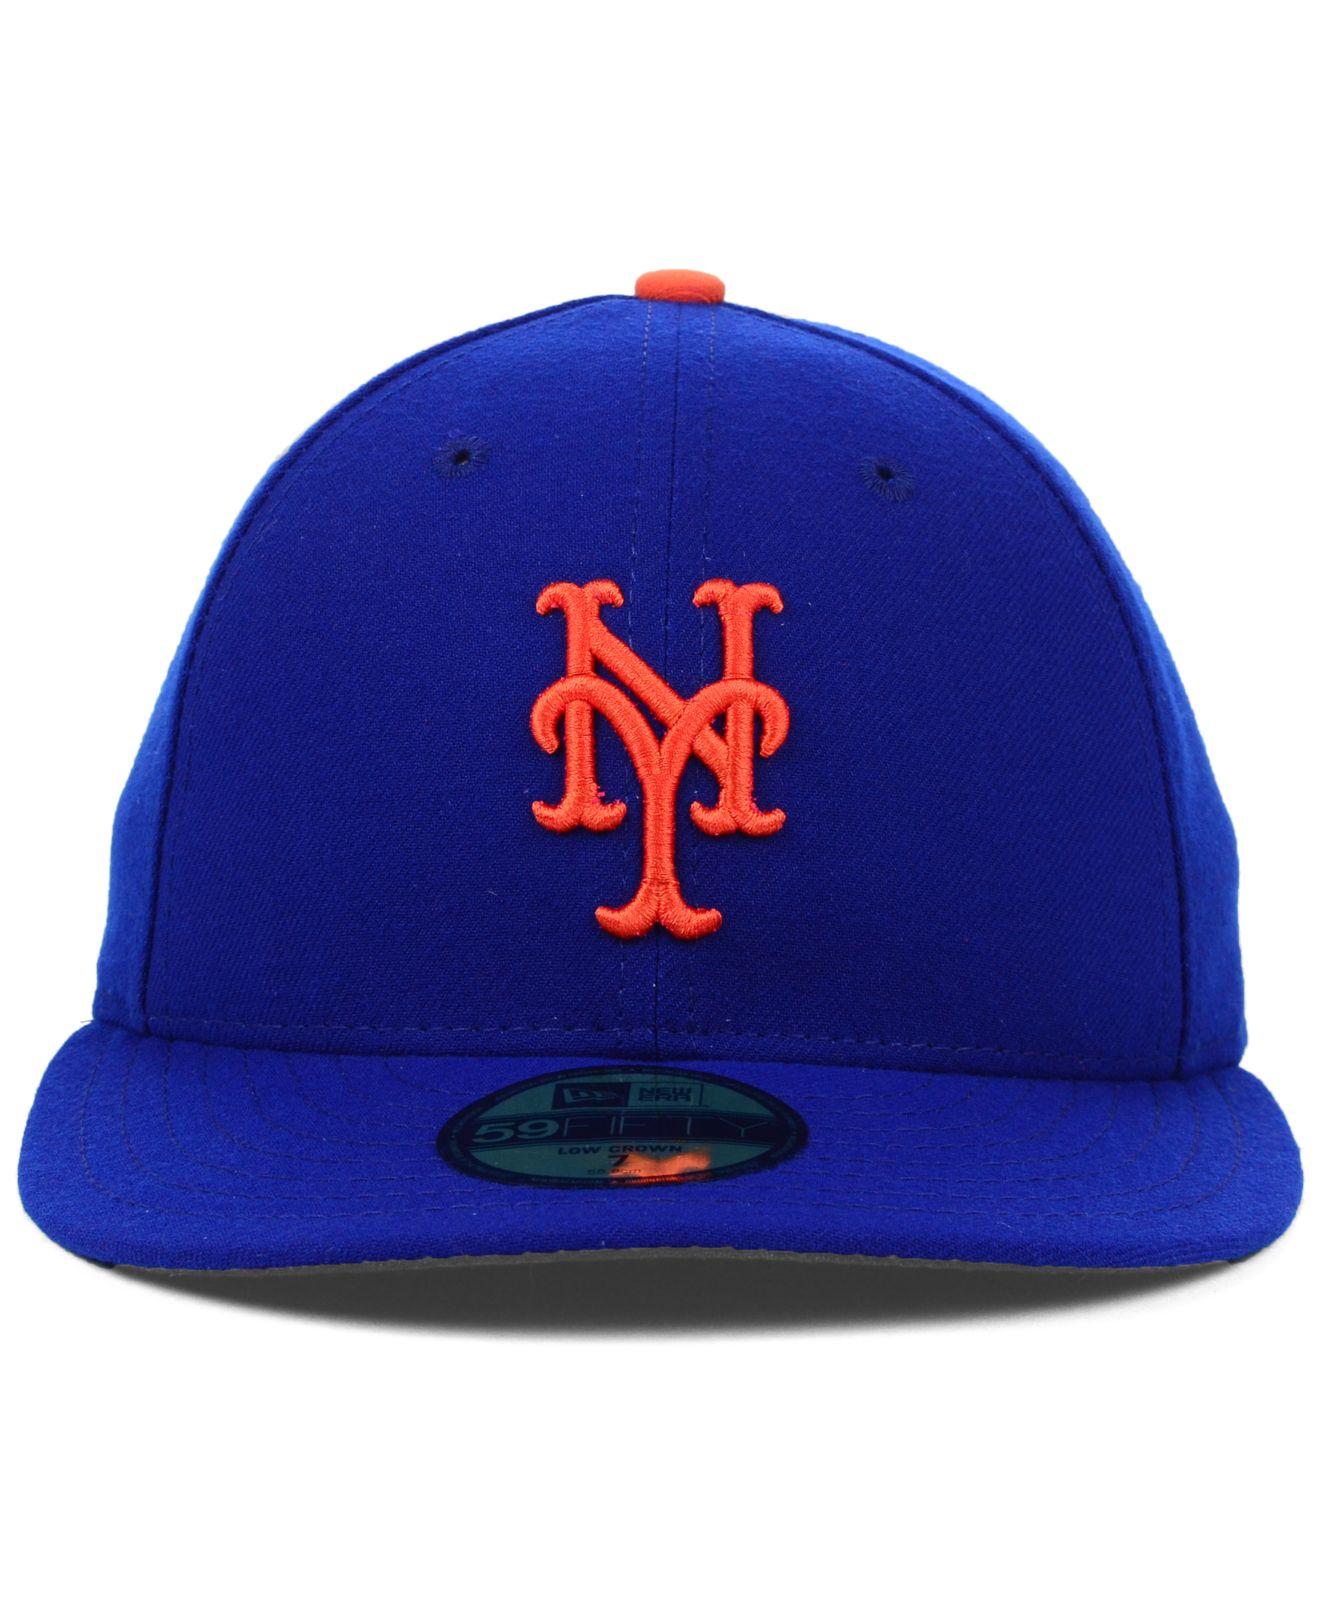 New Era 59fifty Low Crown